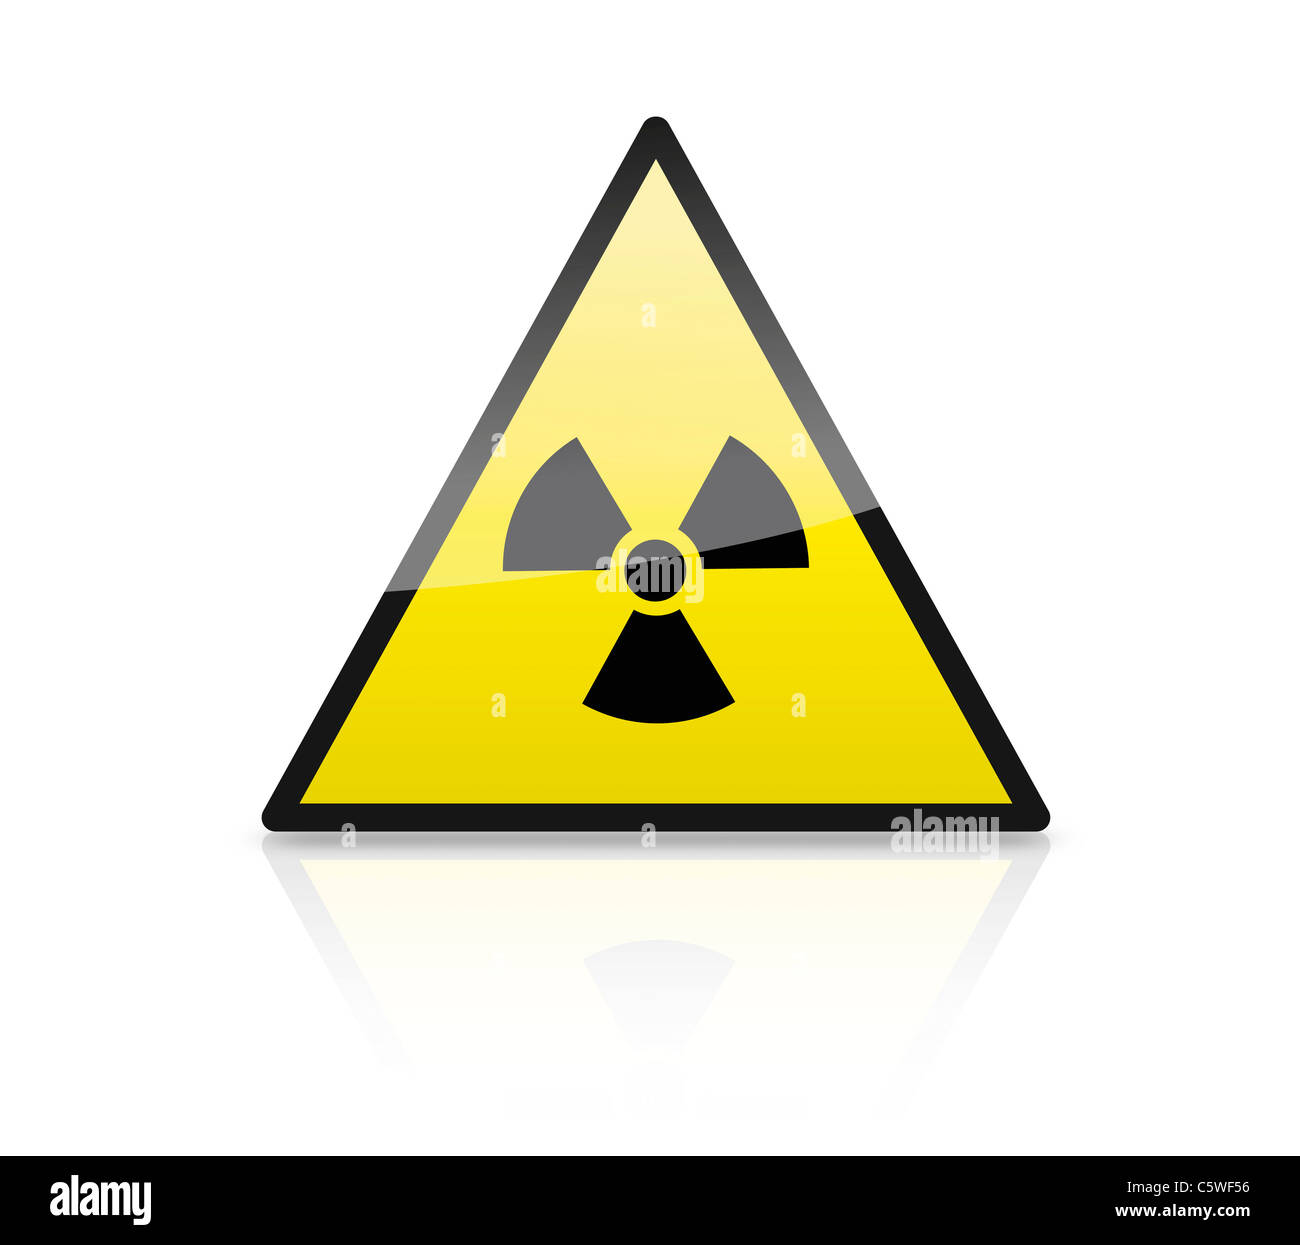 Close up of illustration of atom sign on triangle - Stock Image